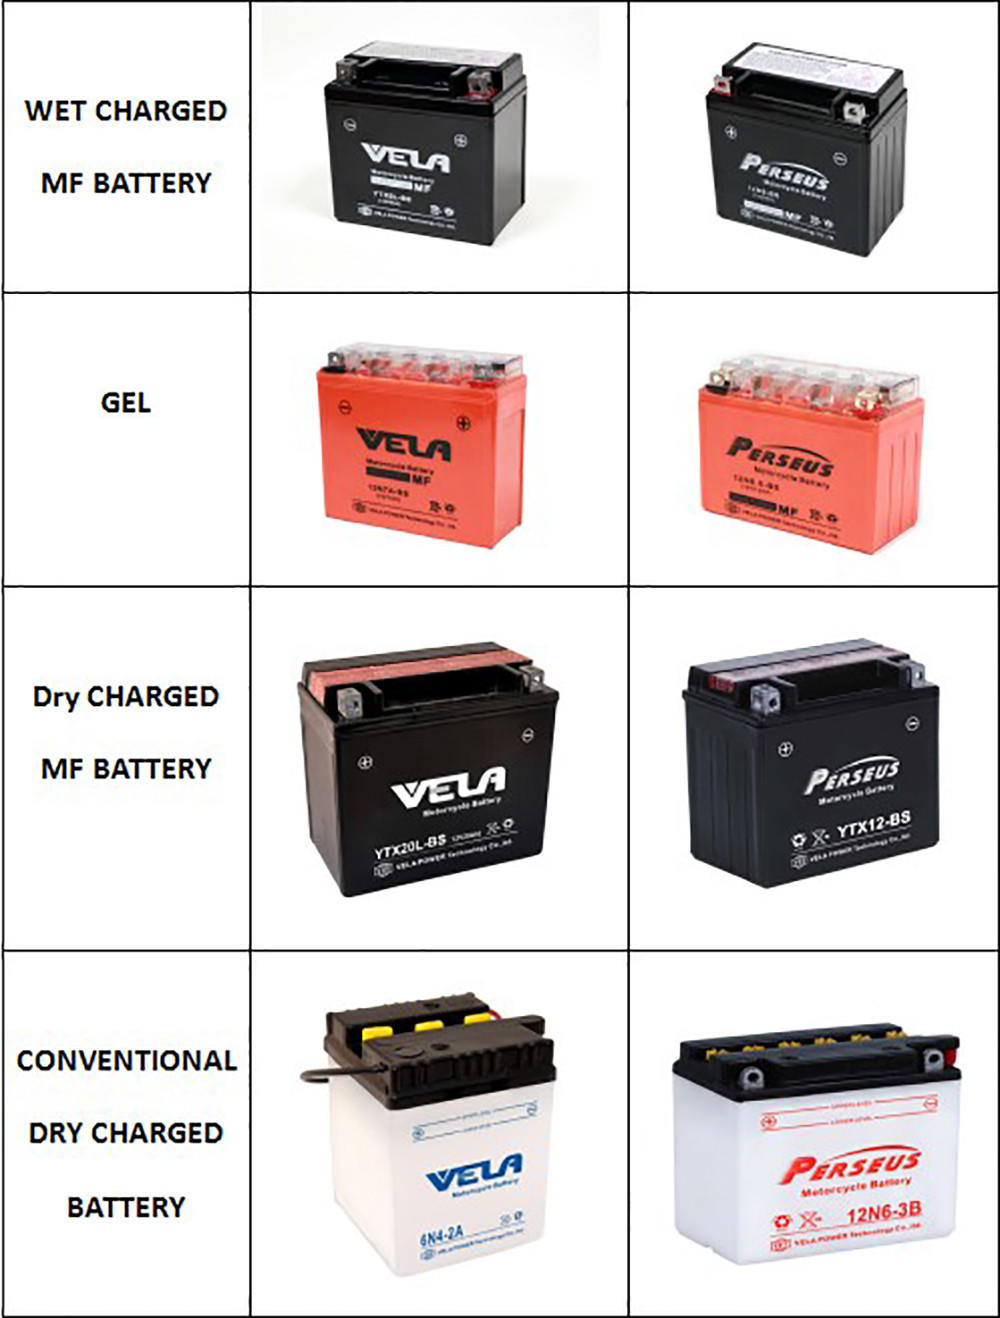 VELA reliable dry cell battery needed for-2